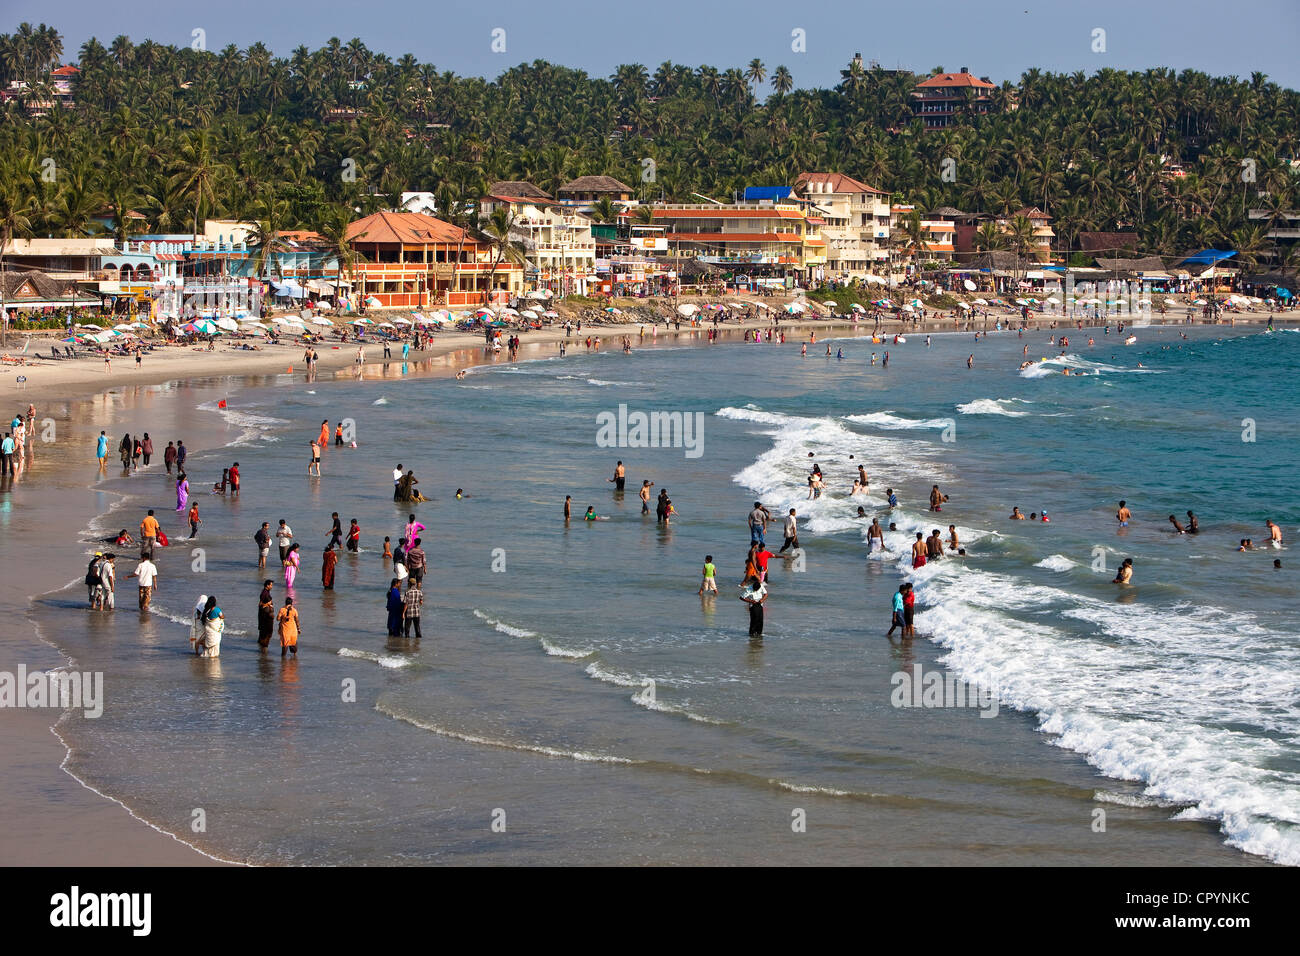 India, Kerala State, seaside resort of Kovalam - Stock Image